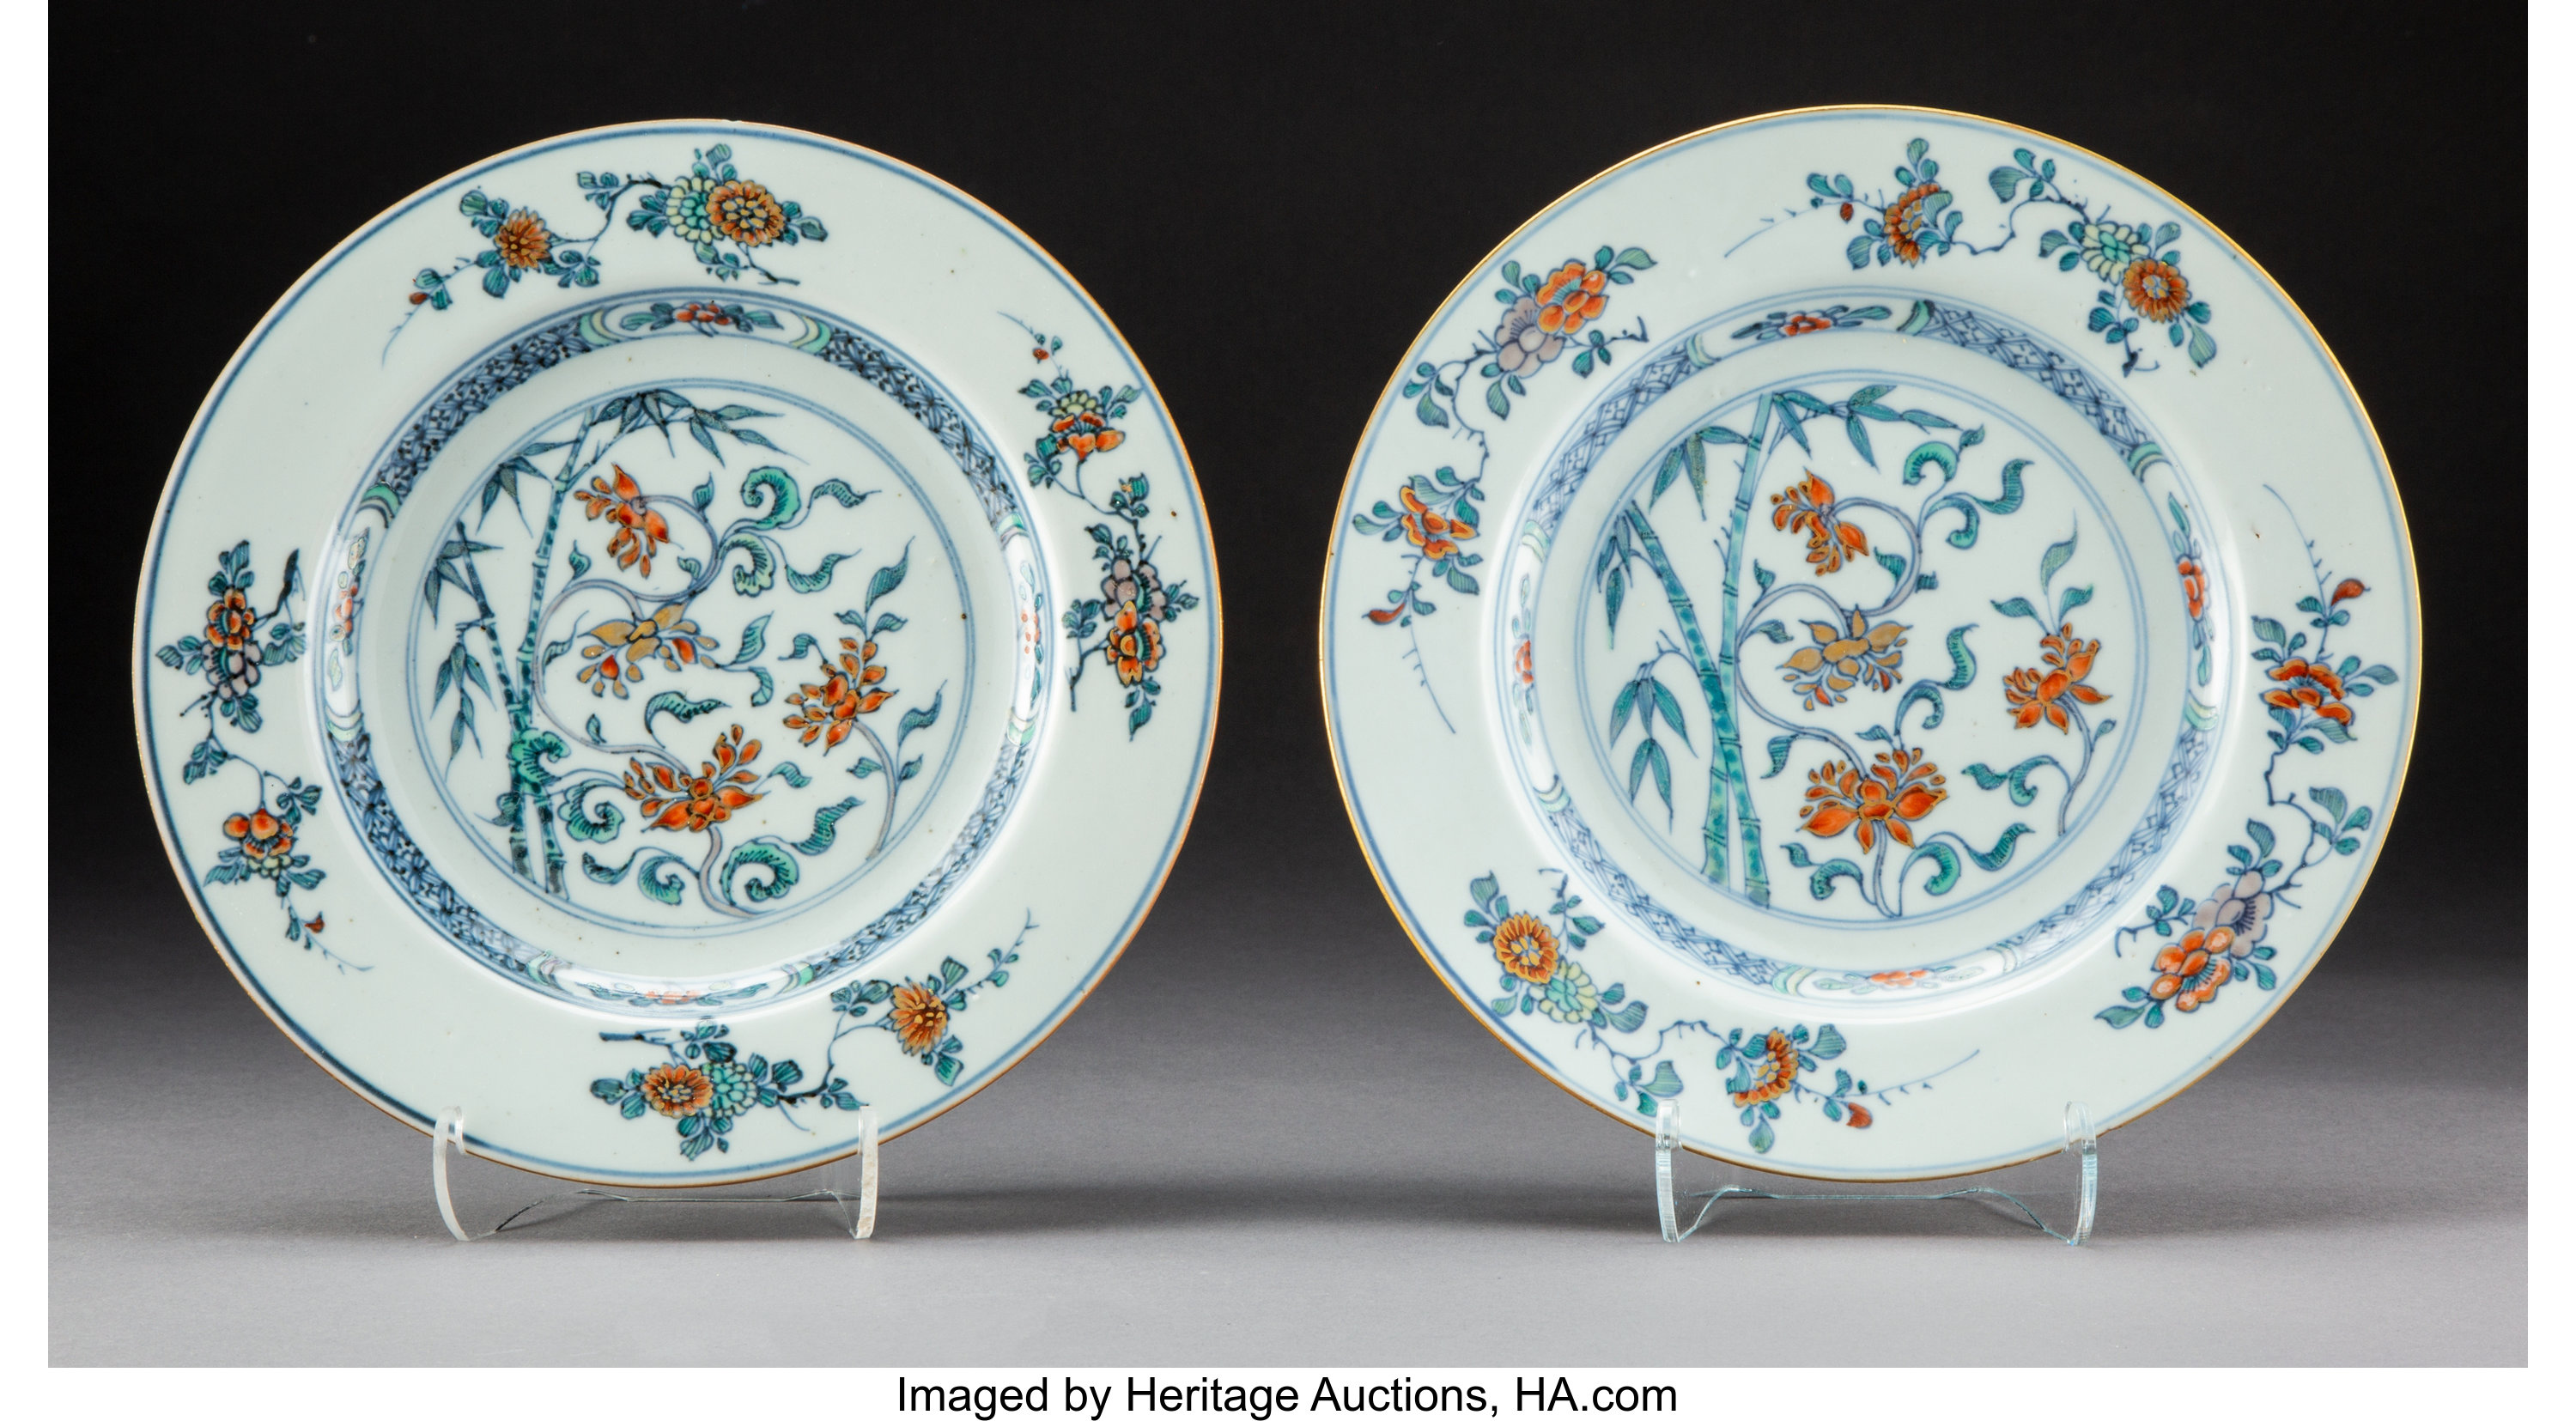 A Pair of Chinese Doucai Porcelain Plates, Qing Dynasty